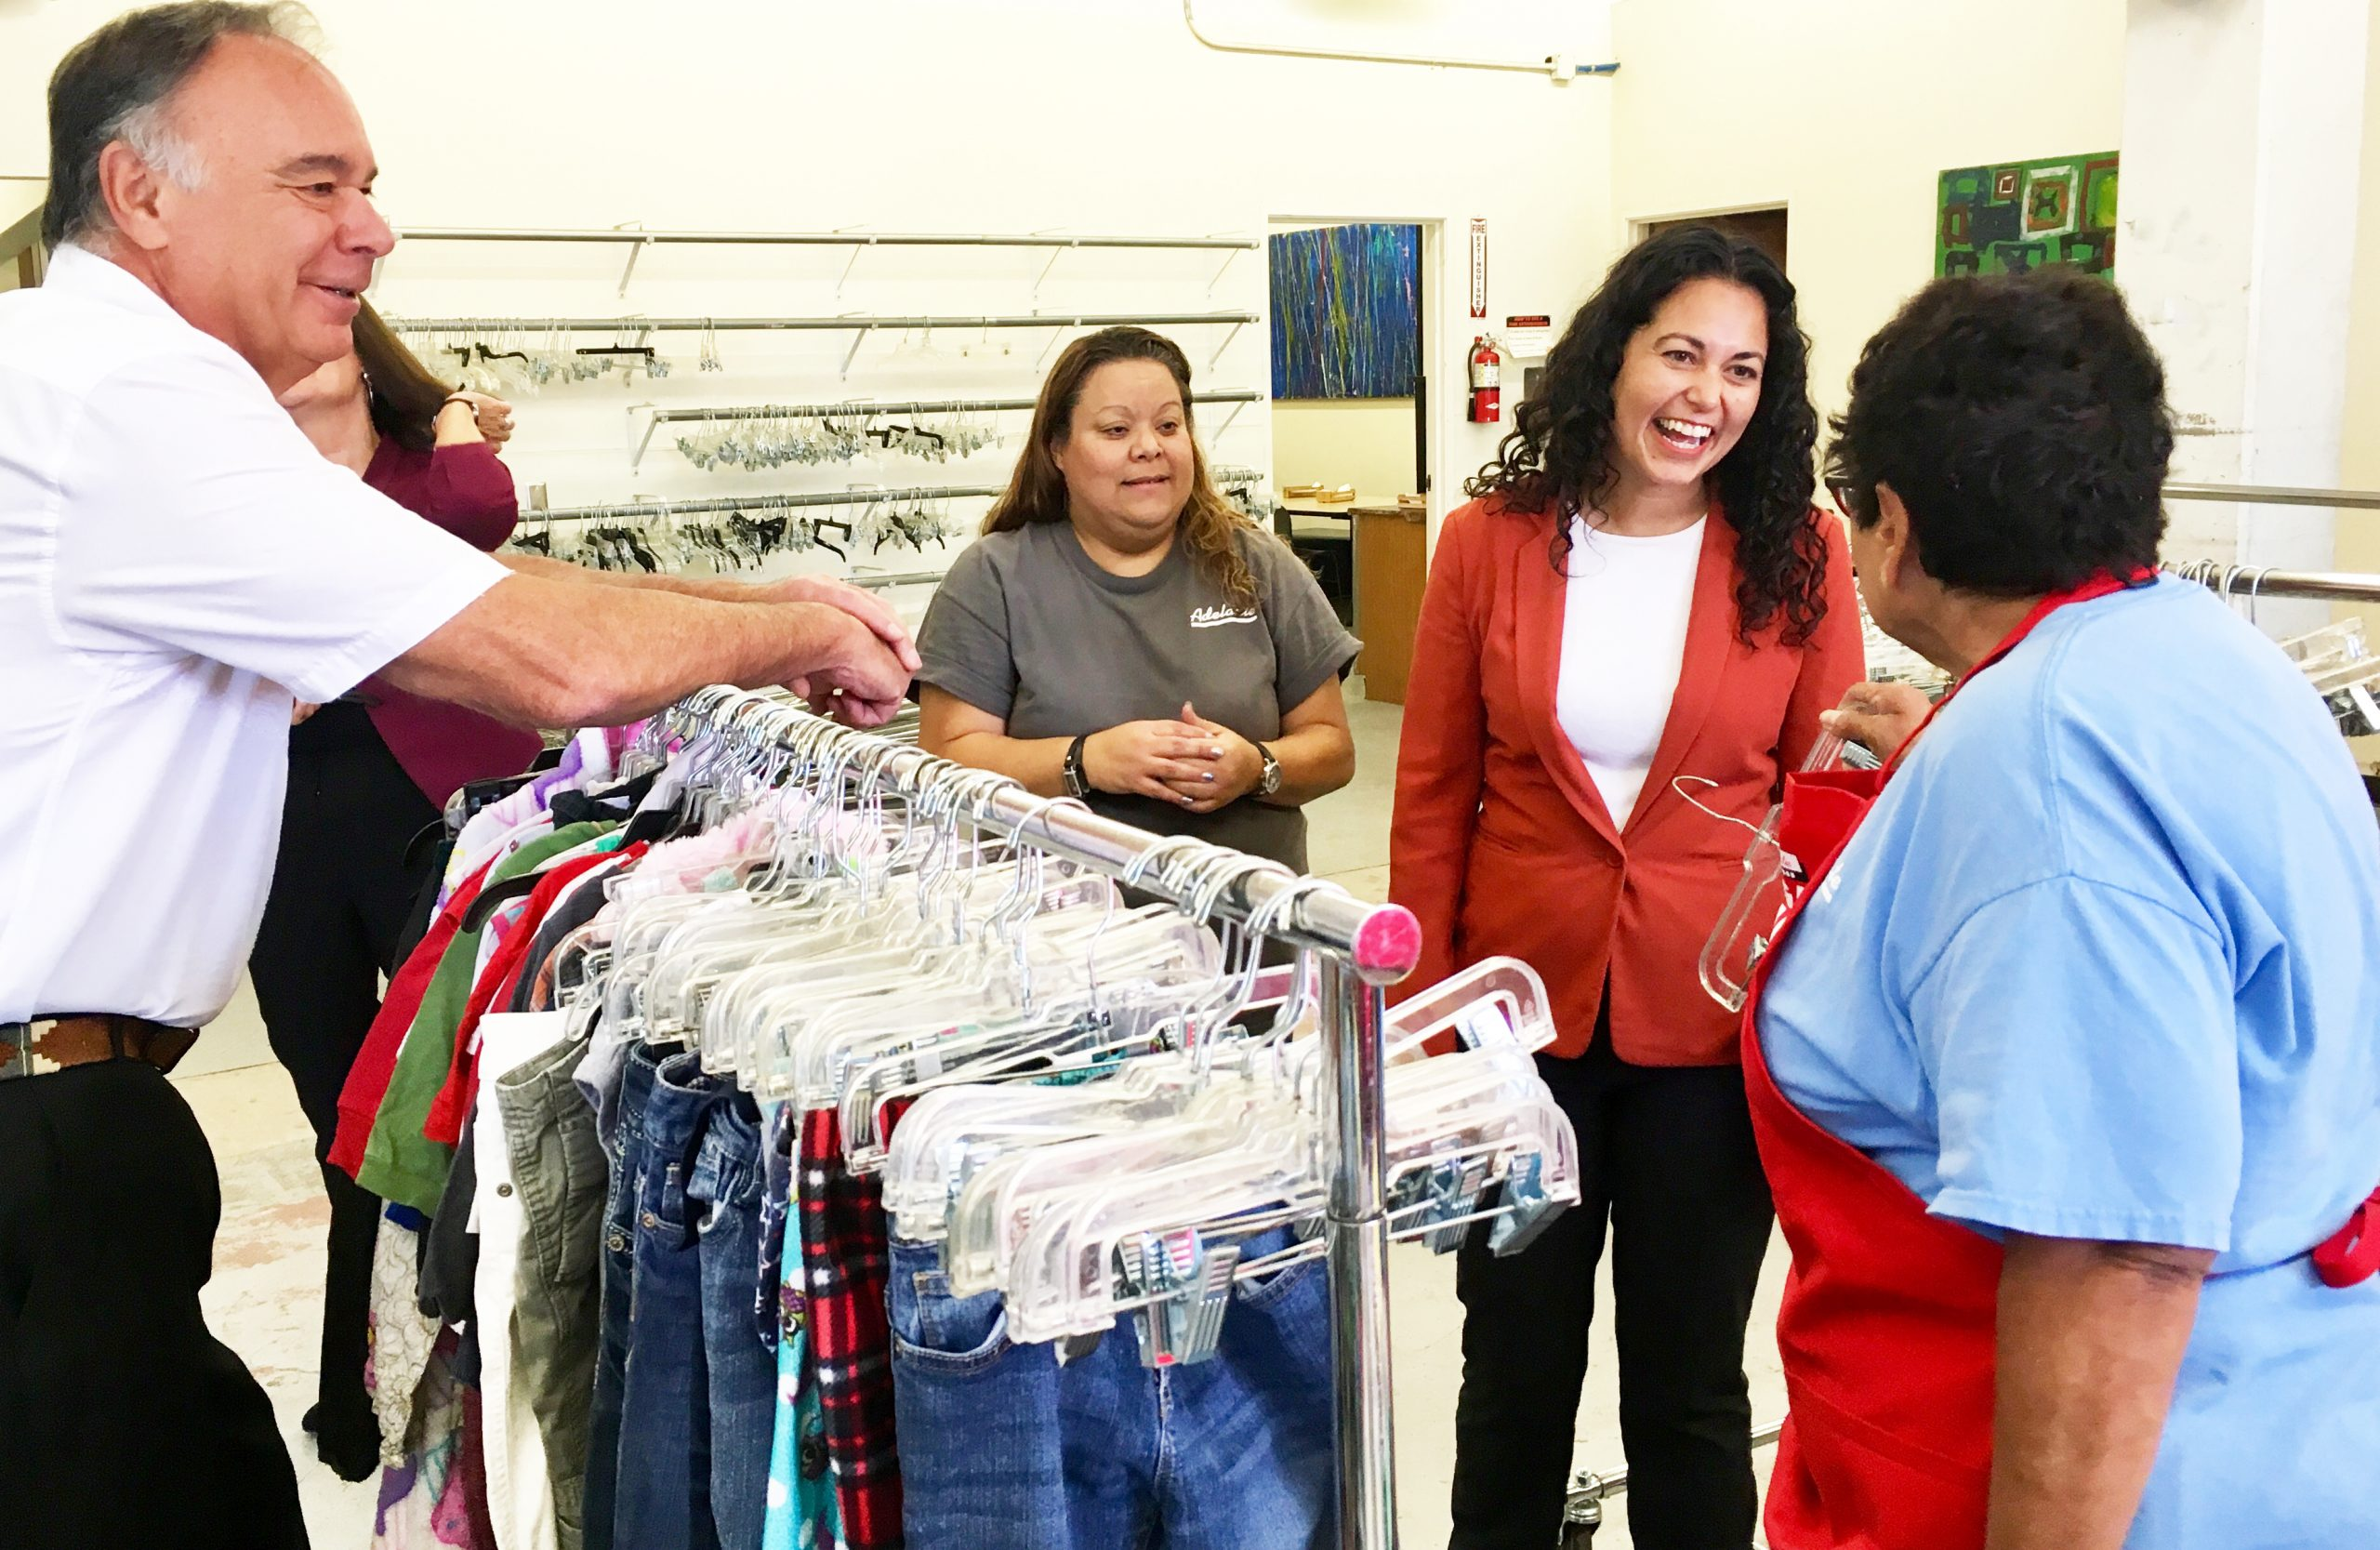 There are four people standing around a clothes rack. Congresswoman Xochitl Torres Small is smiling in the center. A client looks back at her. The Bargain Square manager stands behind Xochitl Torres Small. A man to the far left stands behind the clothes rack and smiles.